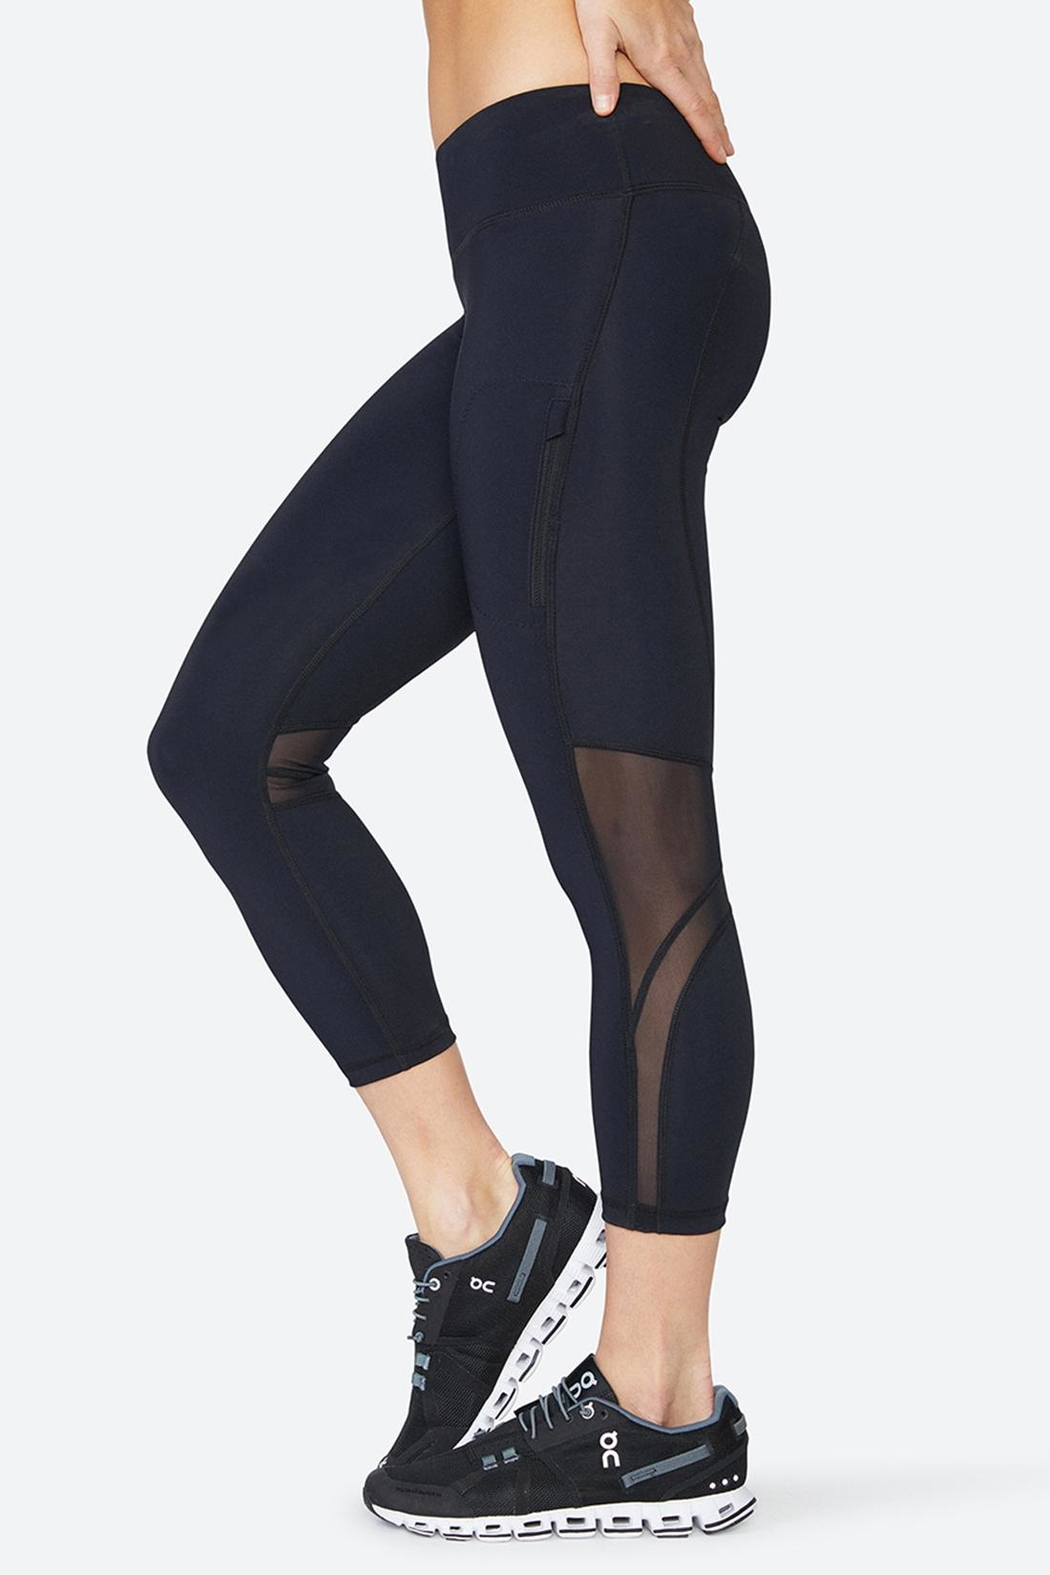 Solfire Chelsea Mesh Tight Leggings - Main Image